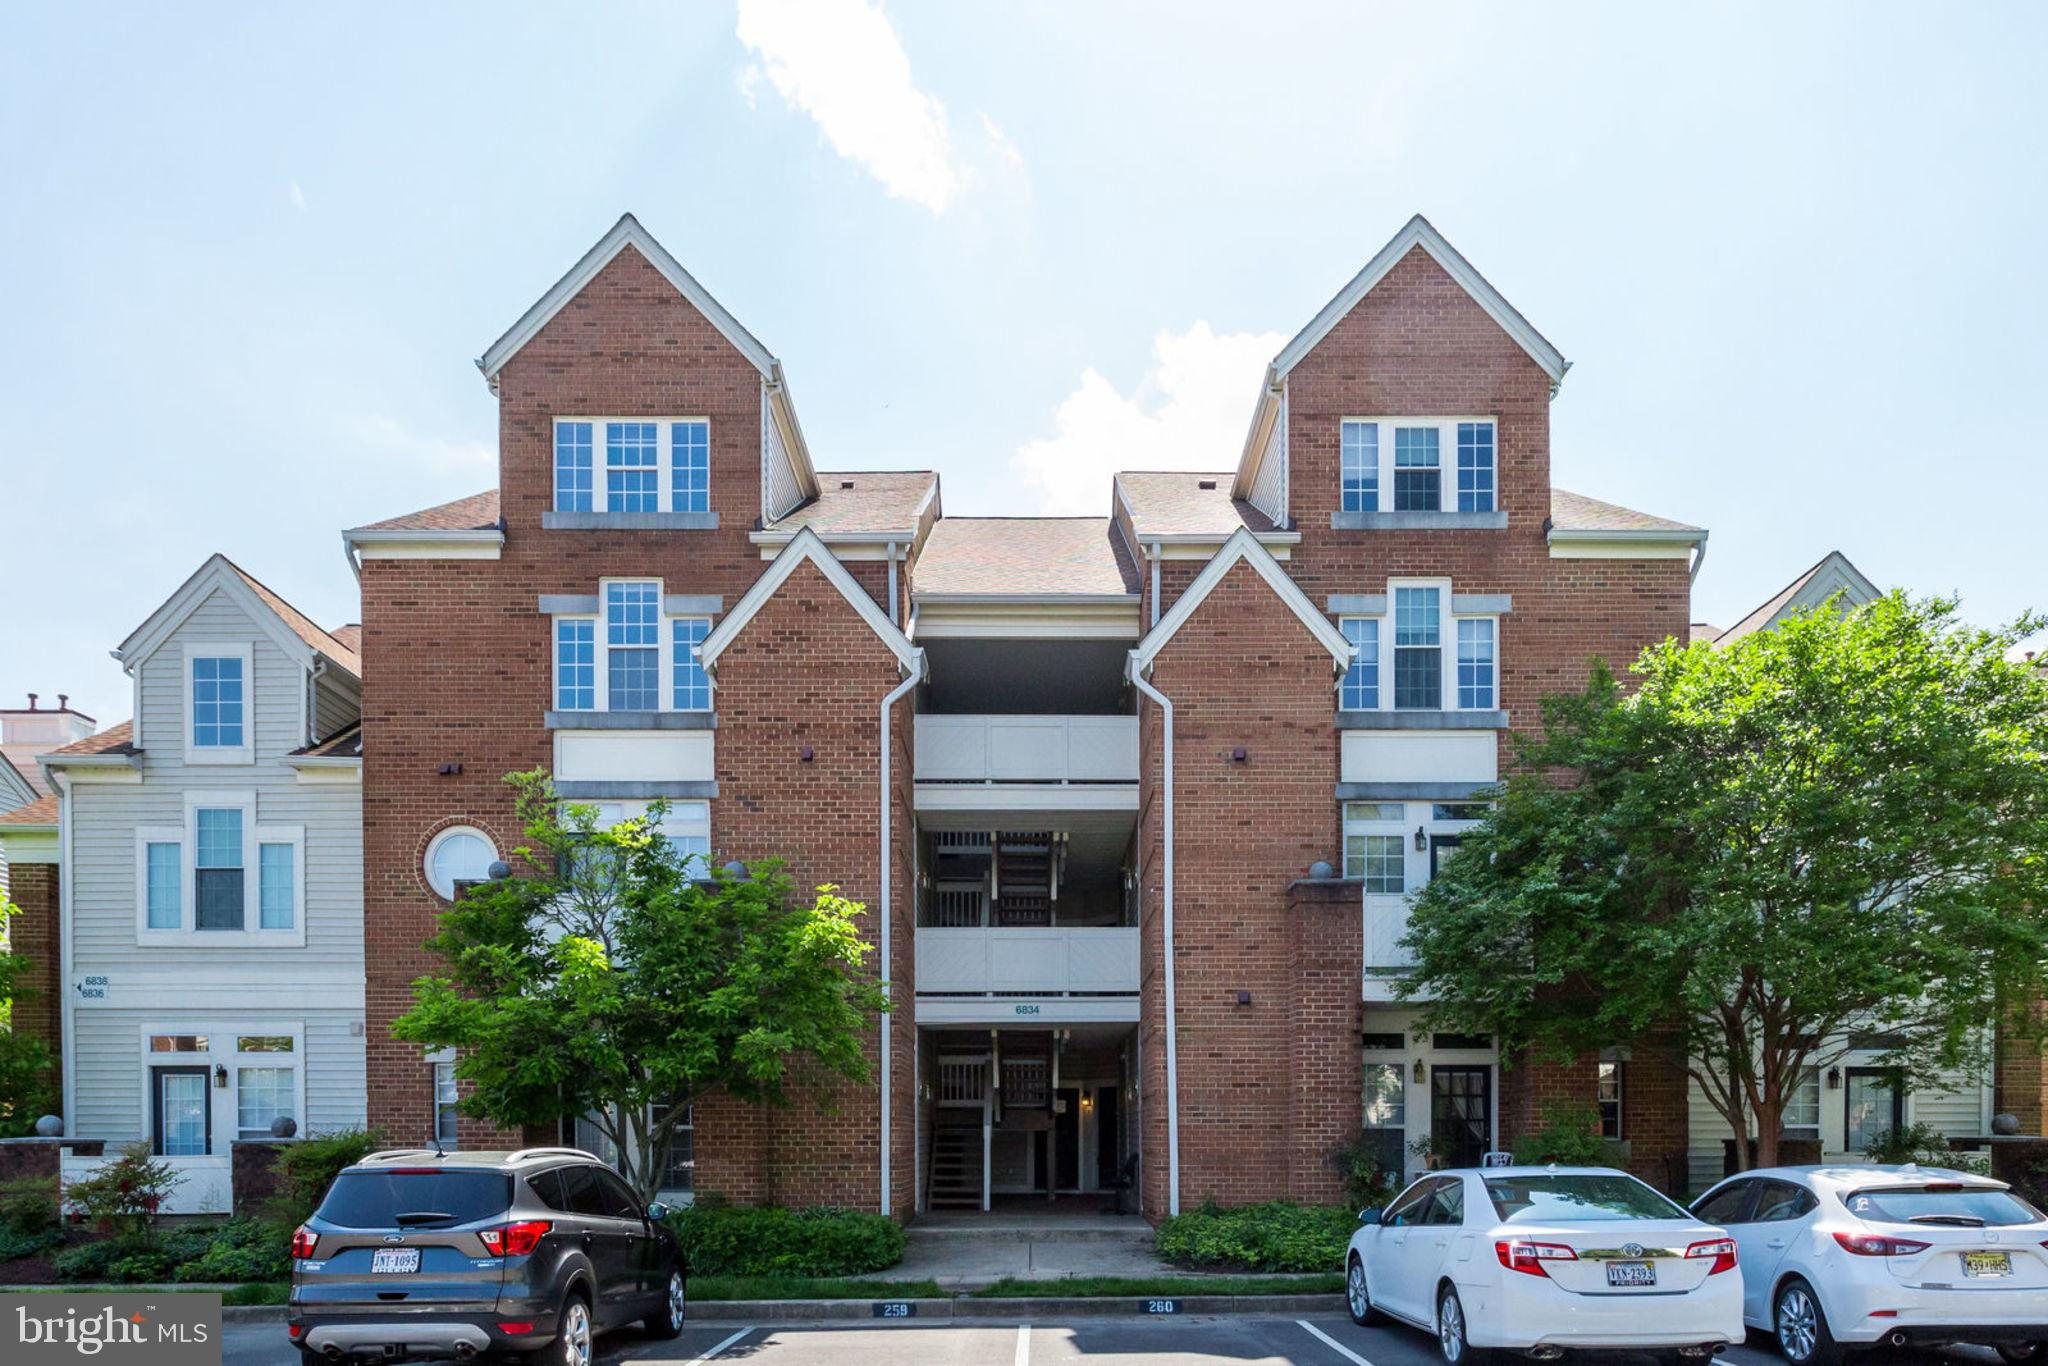 Welcome to your condo with a private entrance, walk into an open floor plan with a fireplace. 9-foot ceilings with a lot of sunlight. granite counters, blinds and ceiling fans. Master bedroom with large windows and a patio. So much closet space!Two outdoor pools, fitness center and clubhouse. Access to other amenities in Kingstowne. 10 minutes to Franconia Springfield Metro.